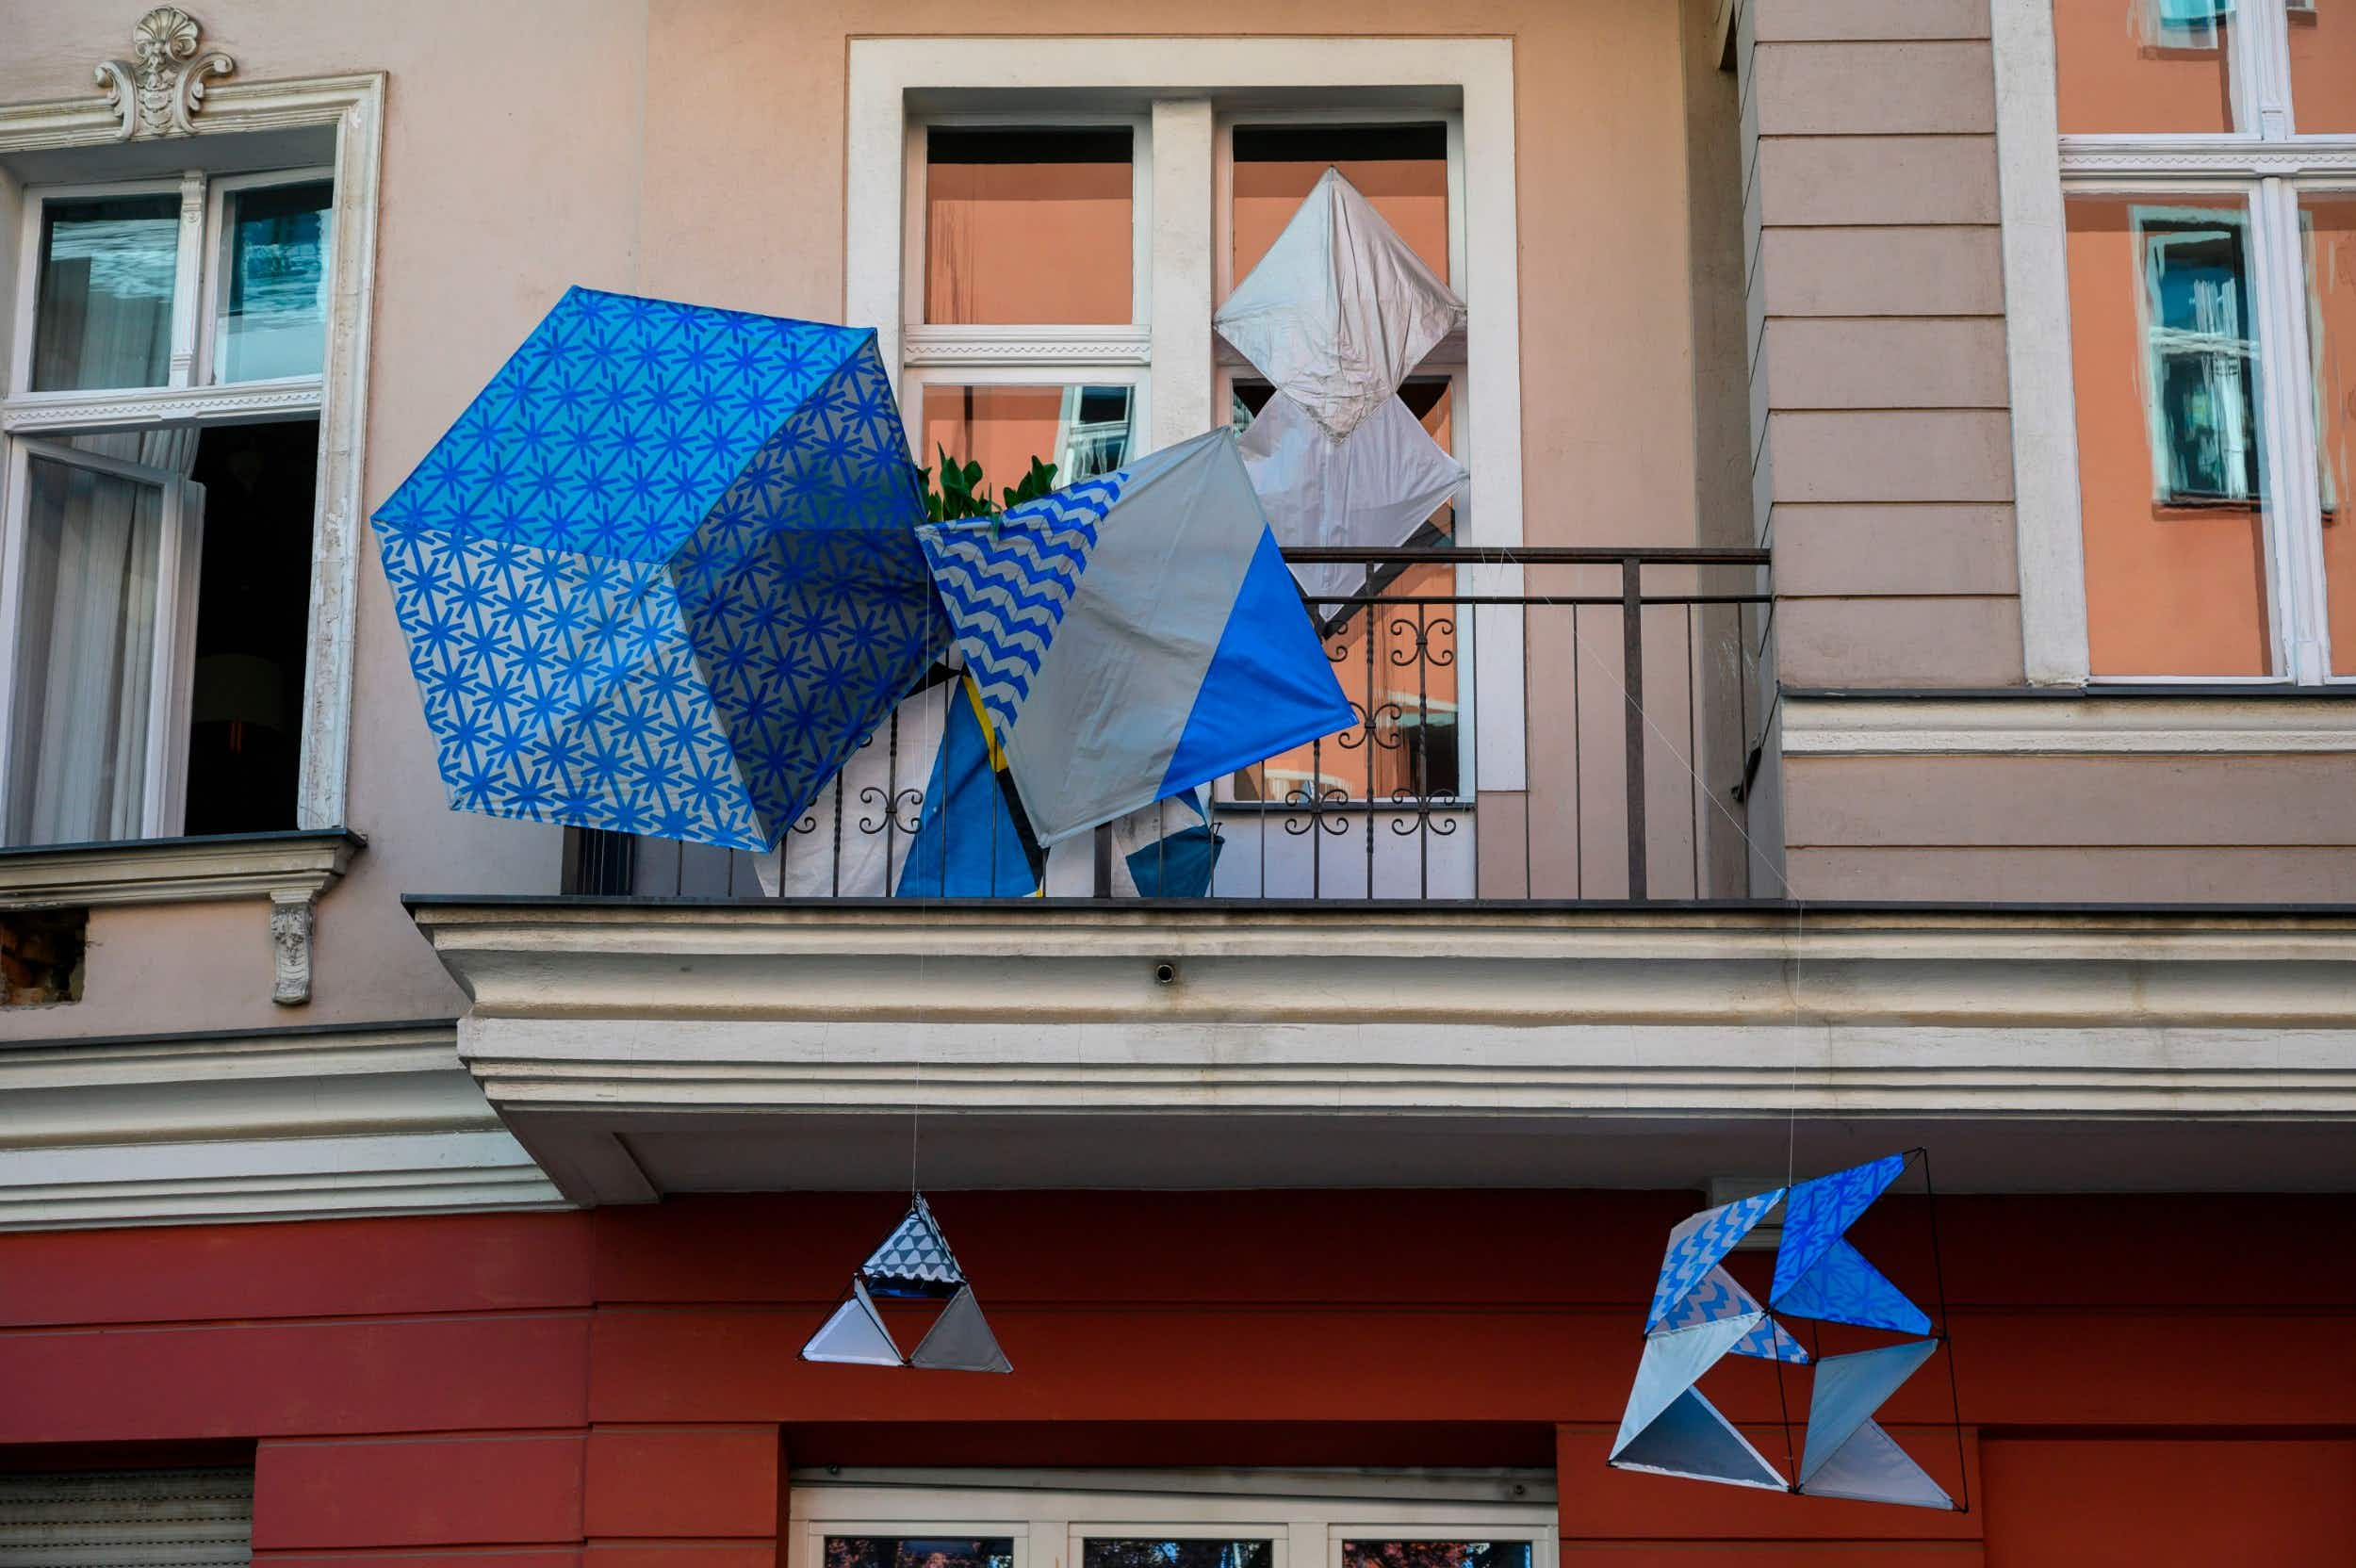 Artists in Berlin created exhibits on their balconies © John MacDougall/AFP via Getty Images